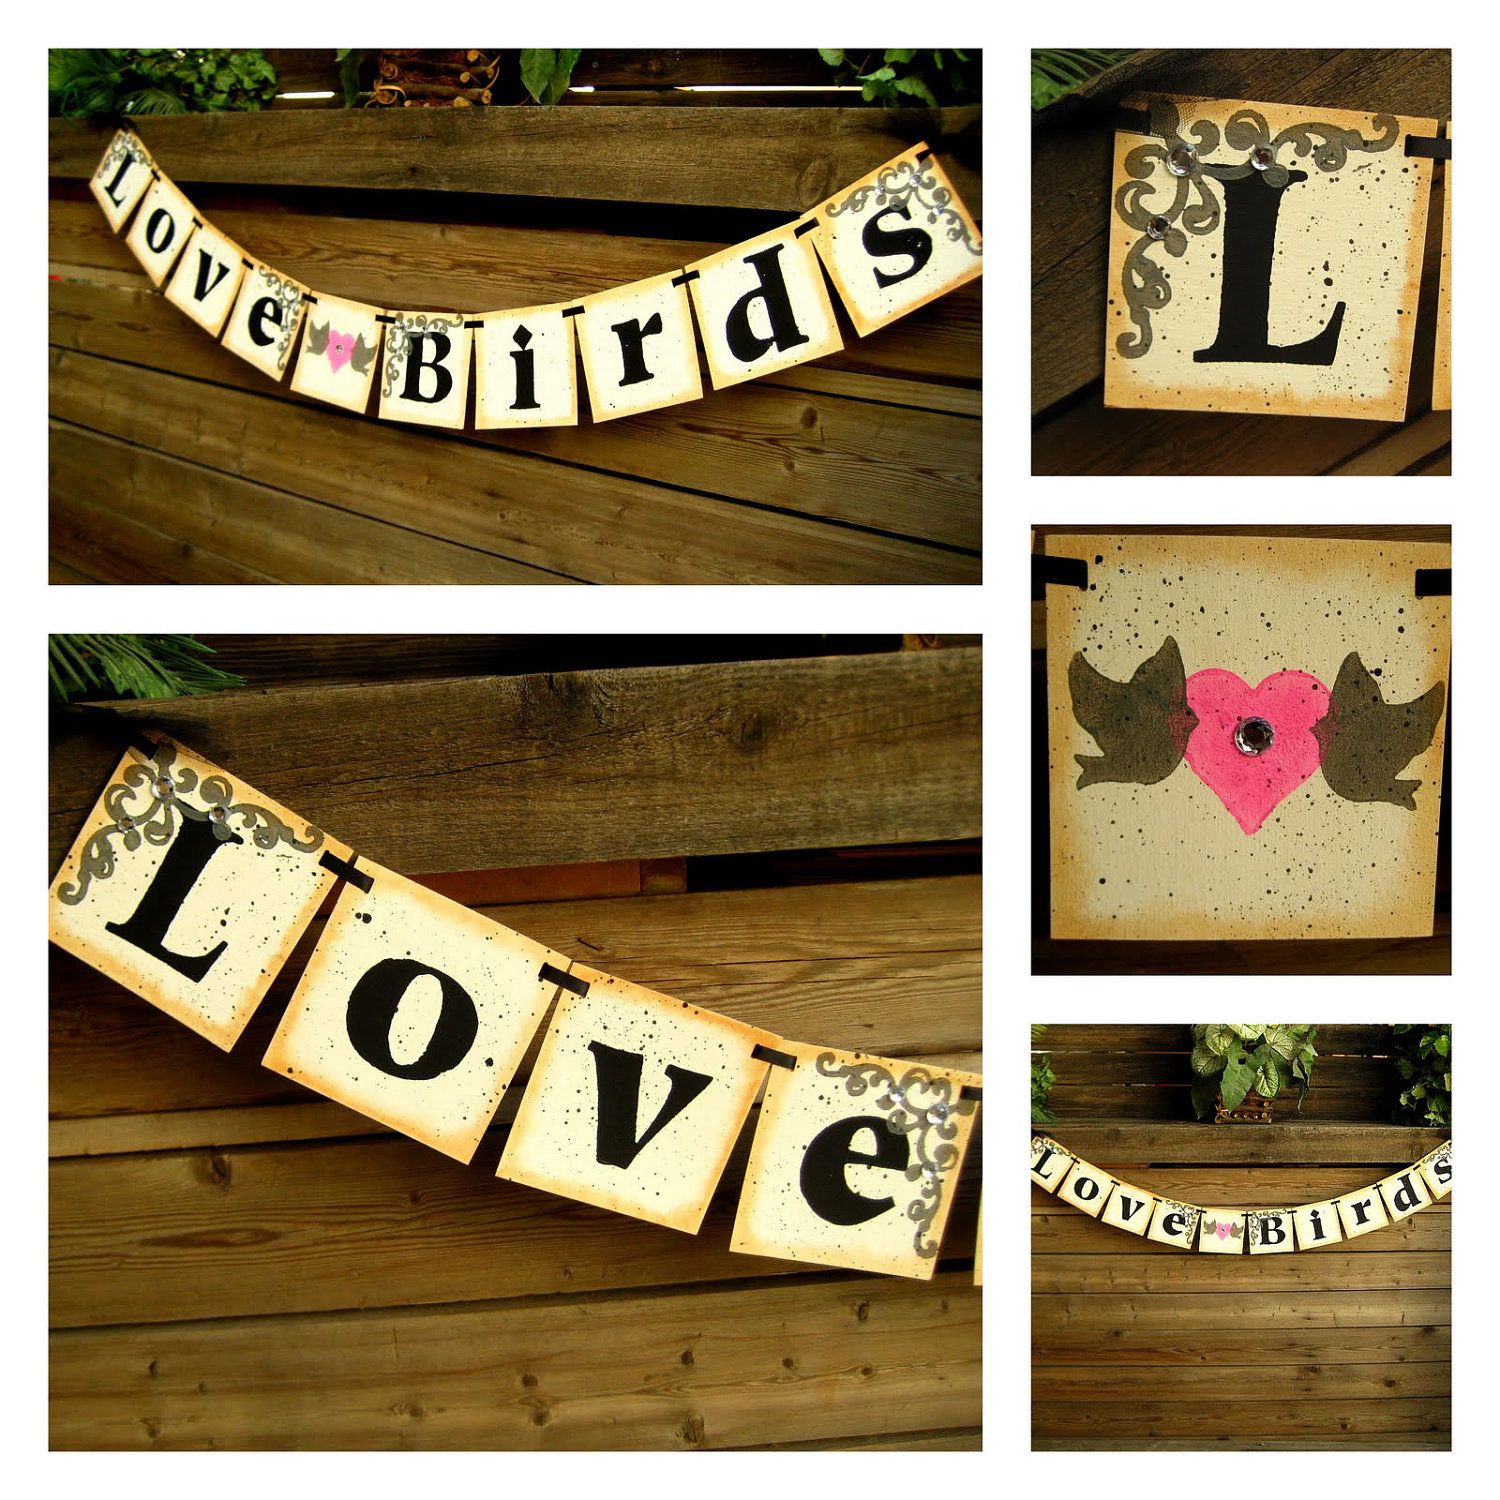 Love birds wedding banner garland bunting bridal shower decor i dont like the look of this banner that much but i like that it says love birds considering our bird theme junglespirit Choice Image